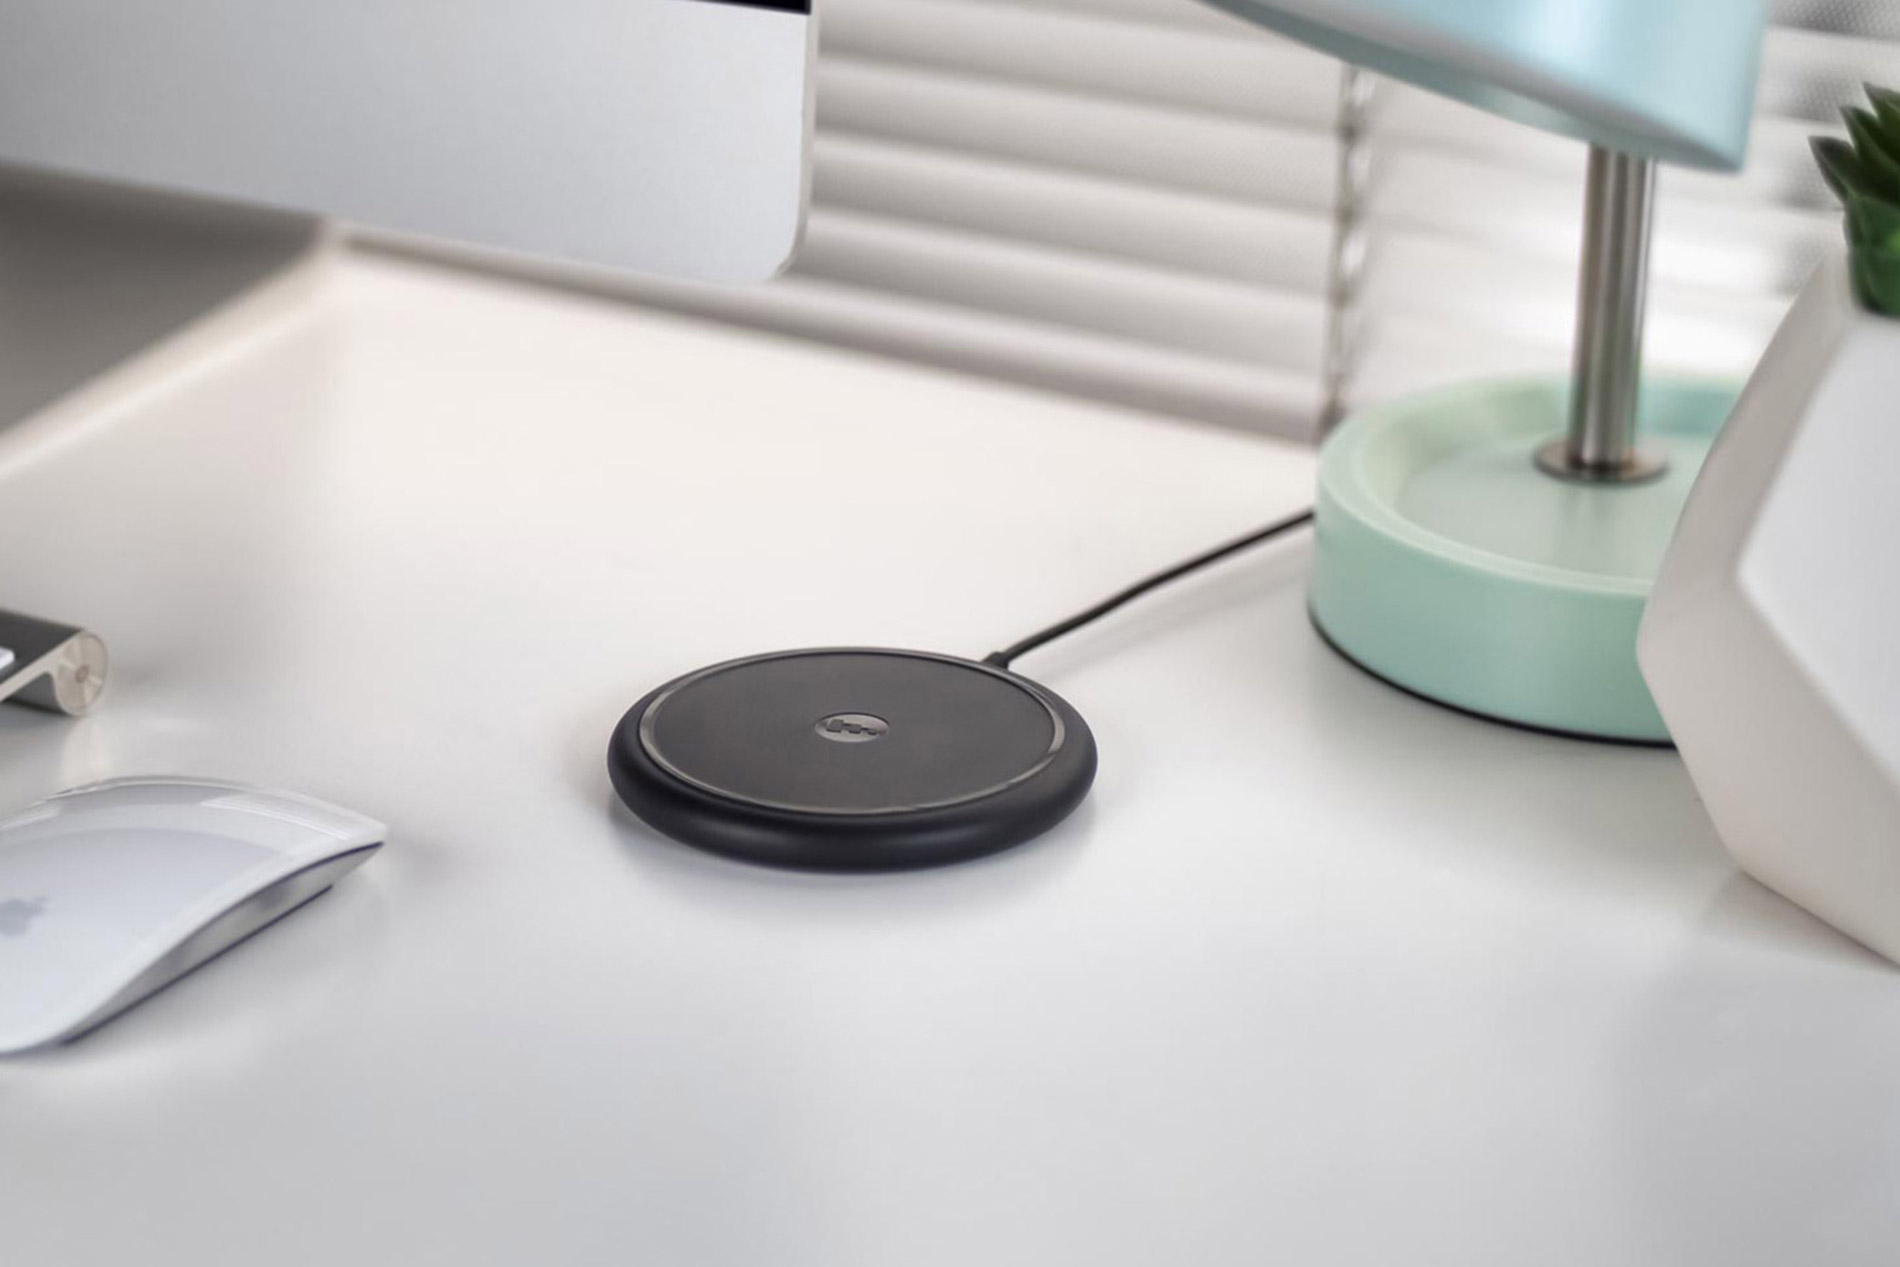 mophie wireless charging base on desk for iPhone